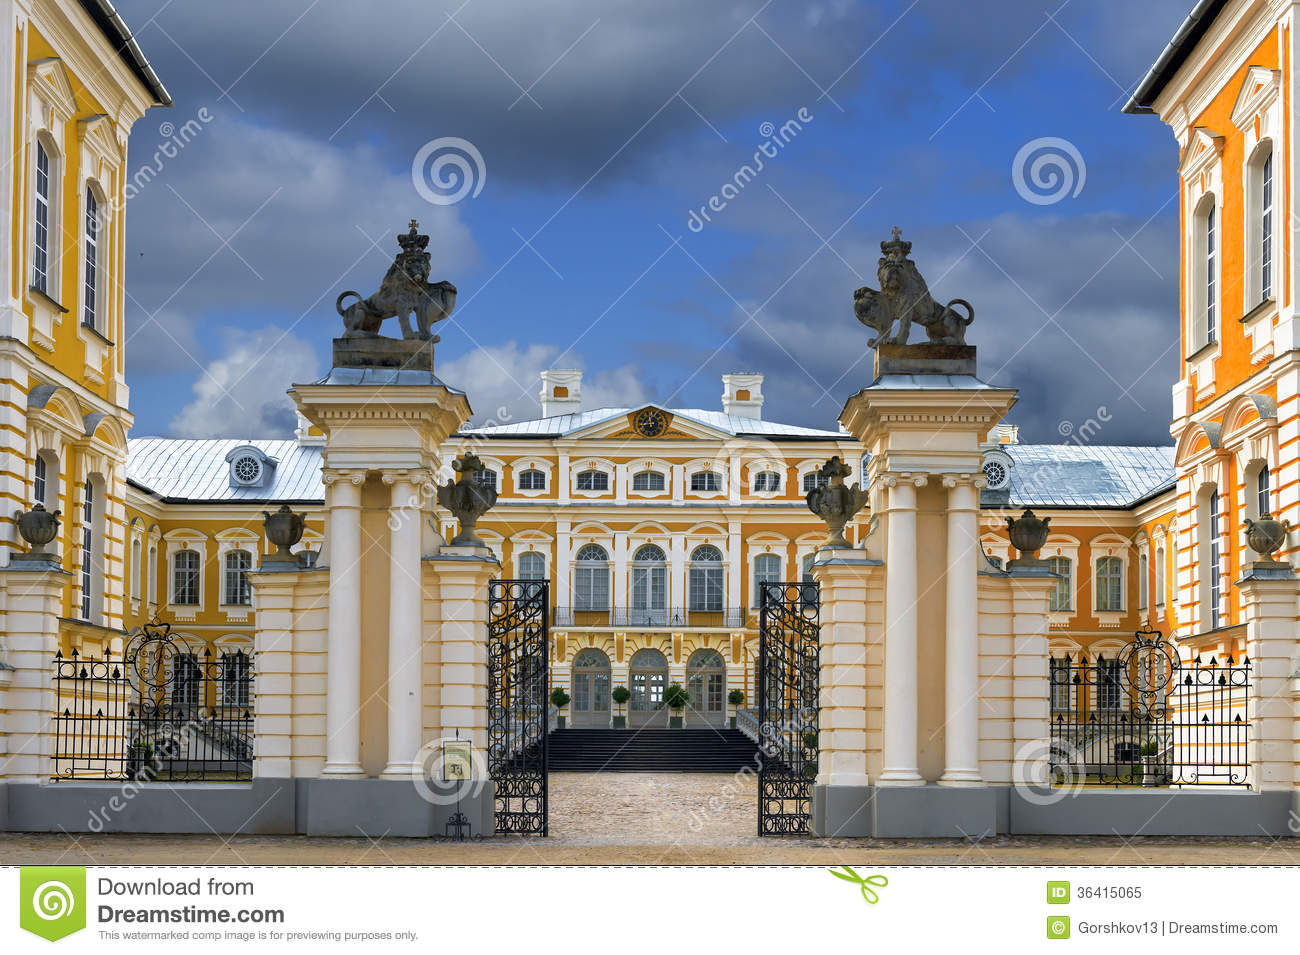 Entrance to historical building of Rundale palace, Latvia